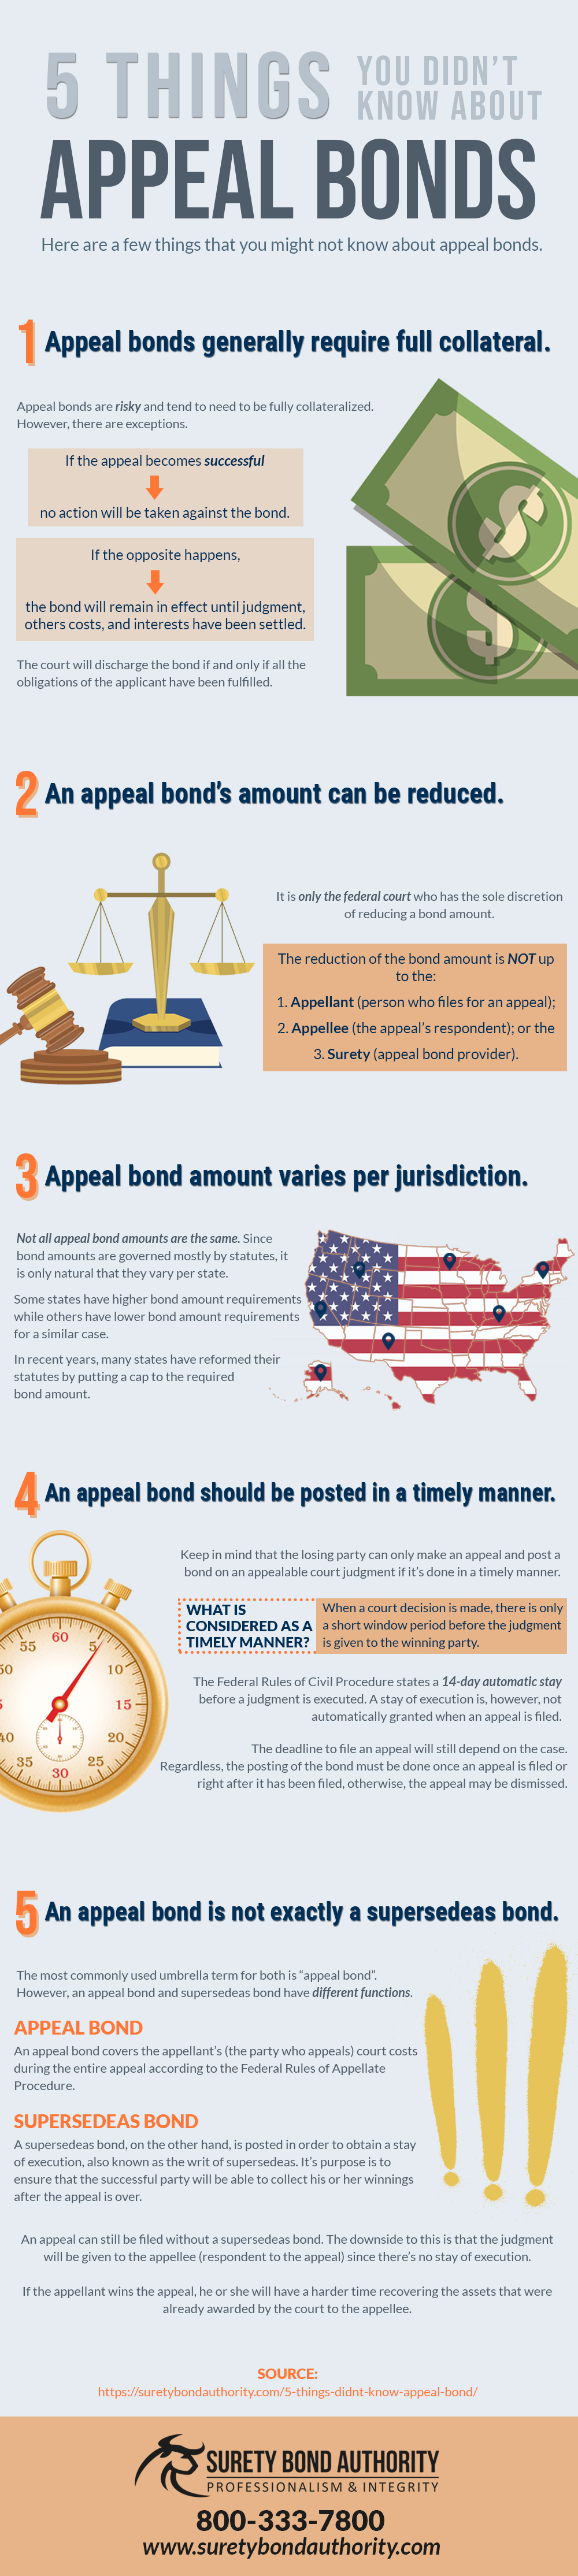 5 things about Appeal Bonds Infographic